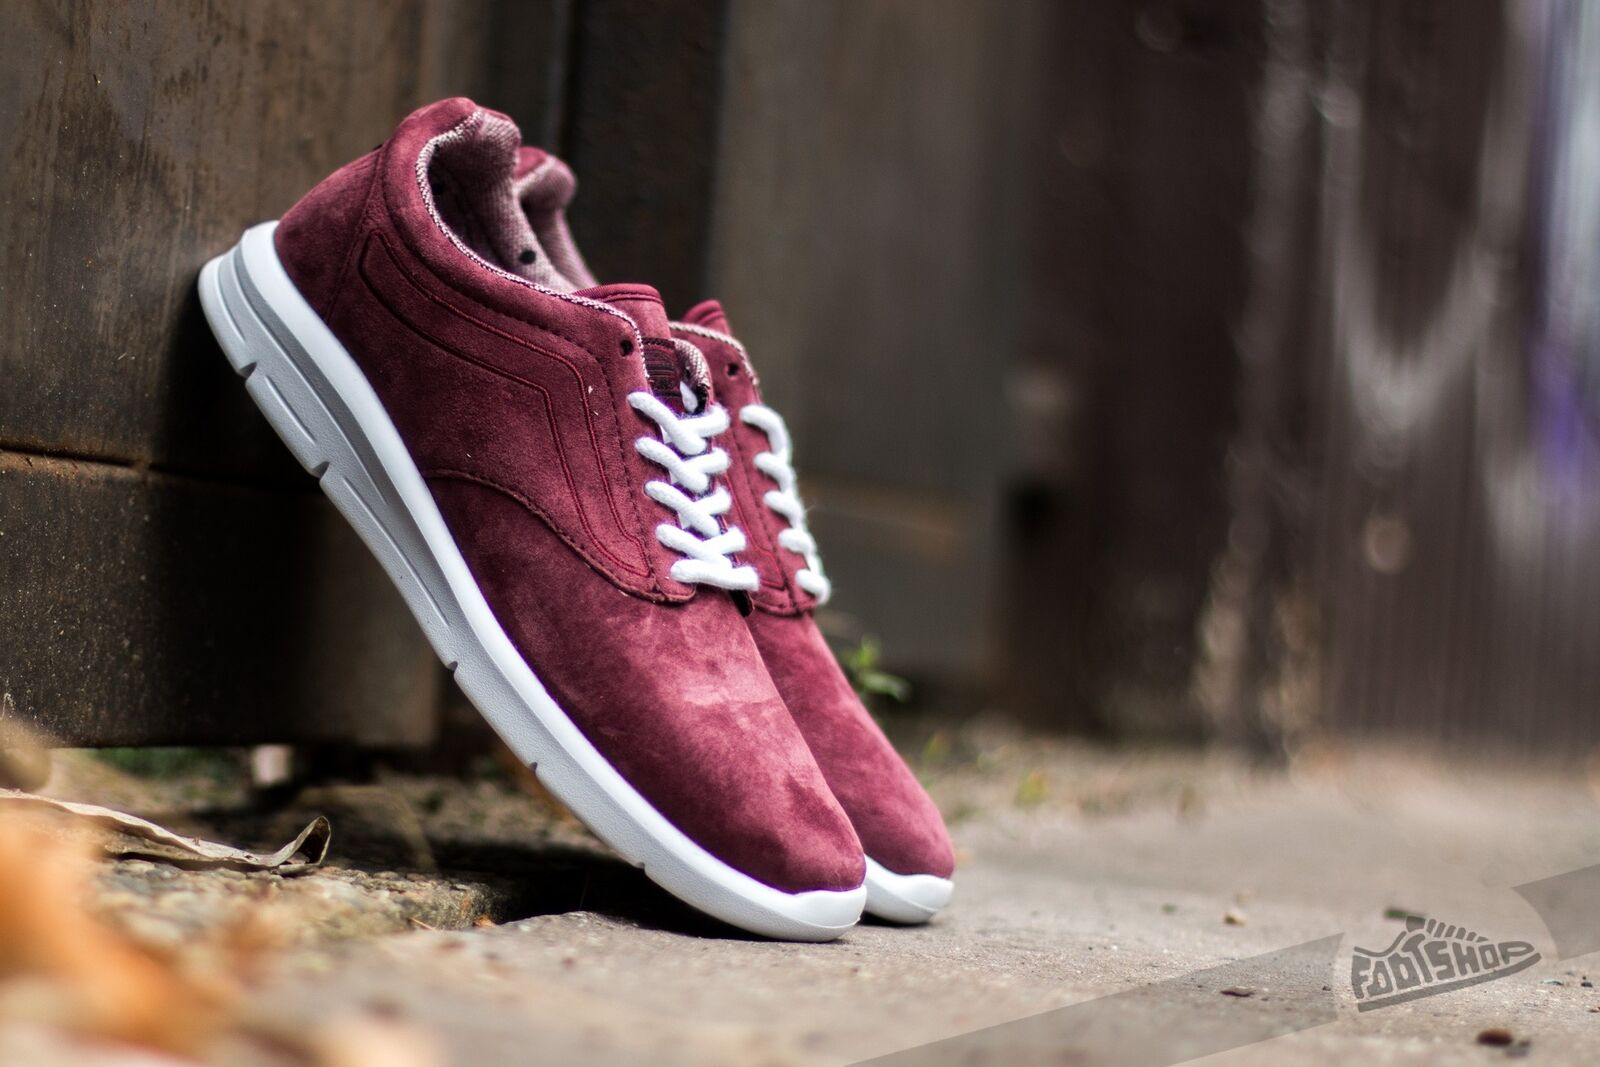 120029712a VANS ISO 1-5 Tweed Dots Womens Trainers Burgundy Shoes 3 UK for sale ...